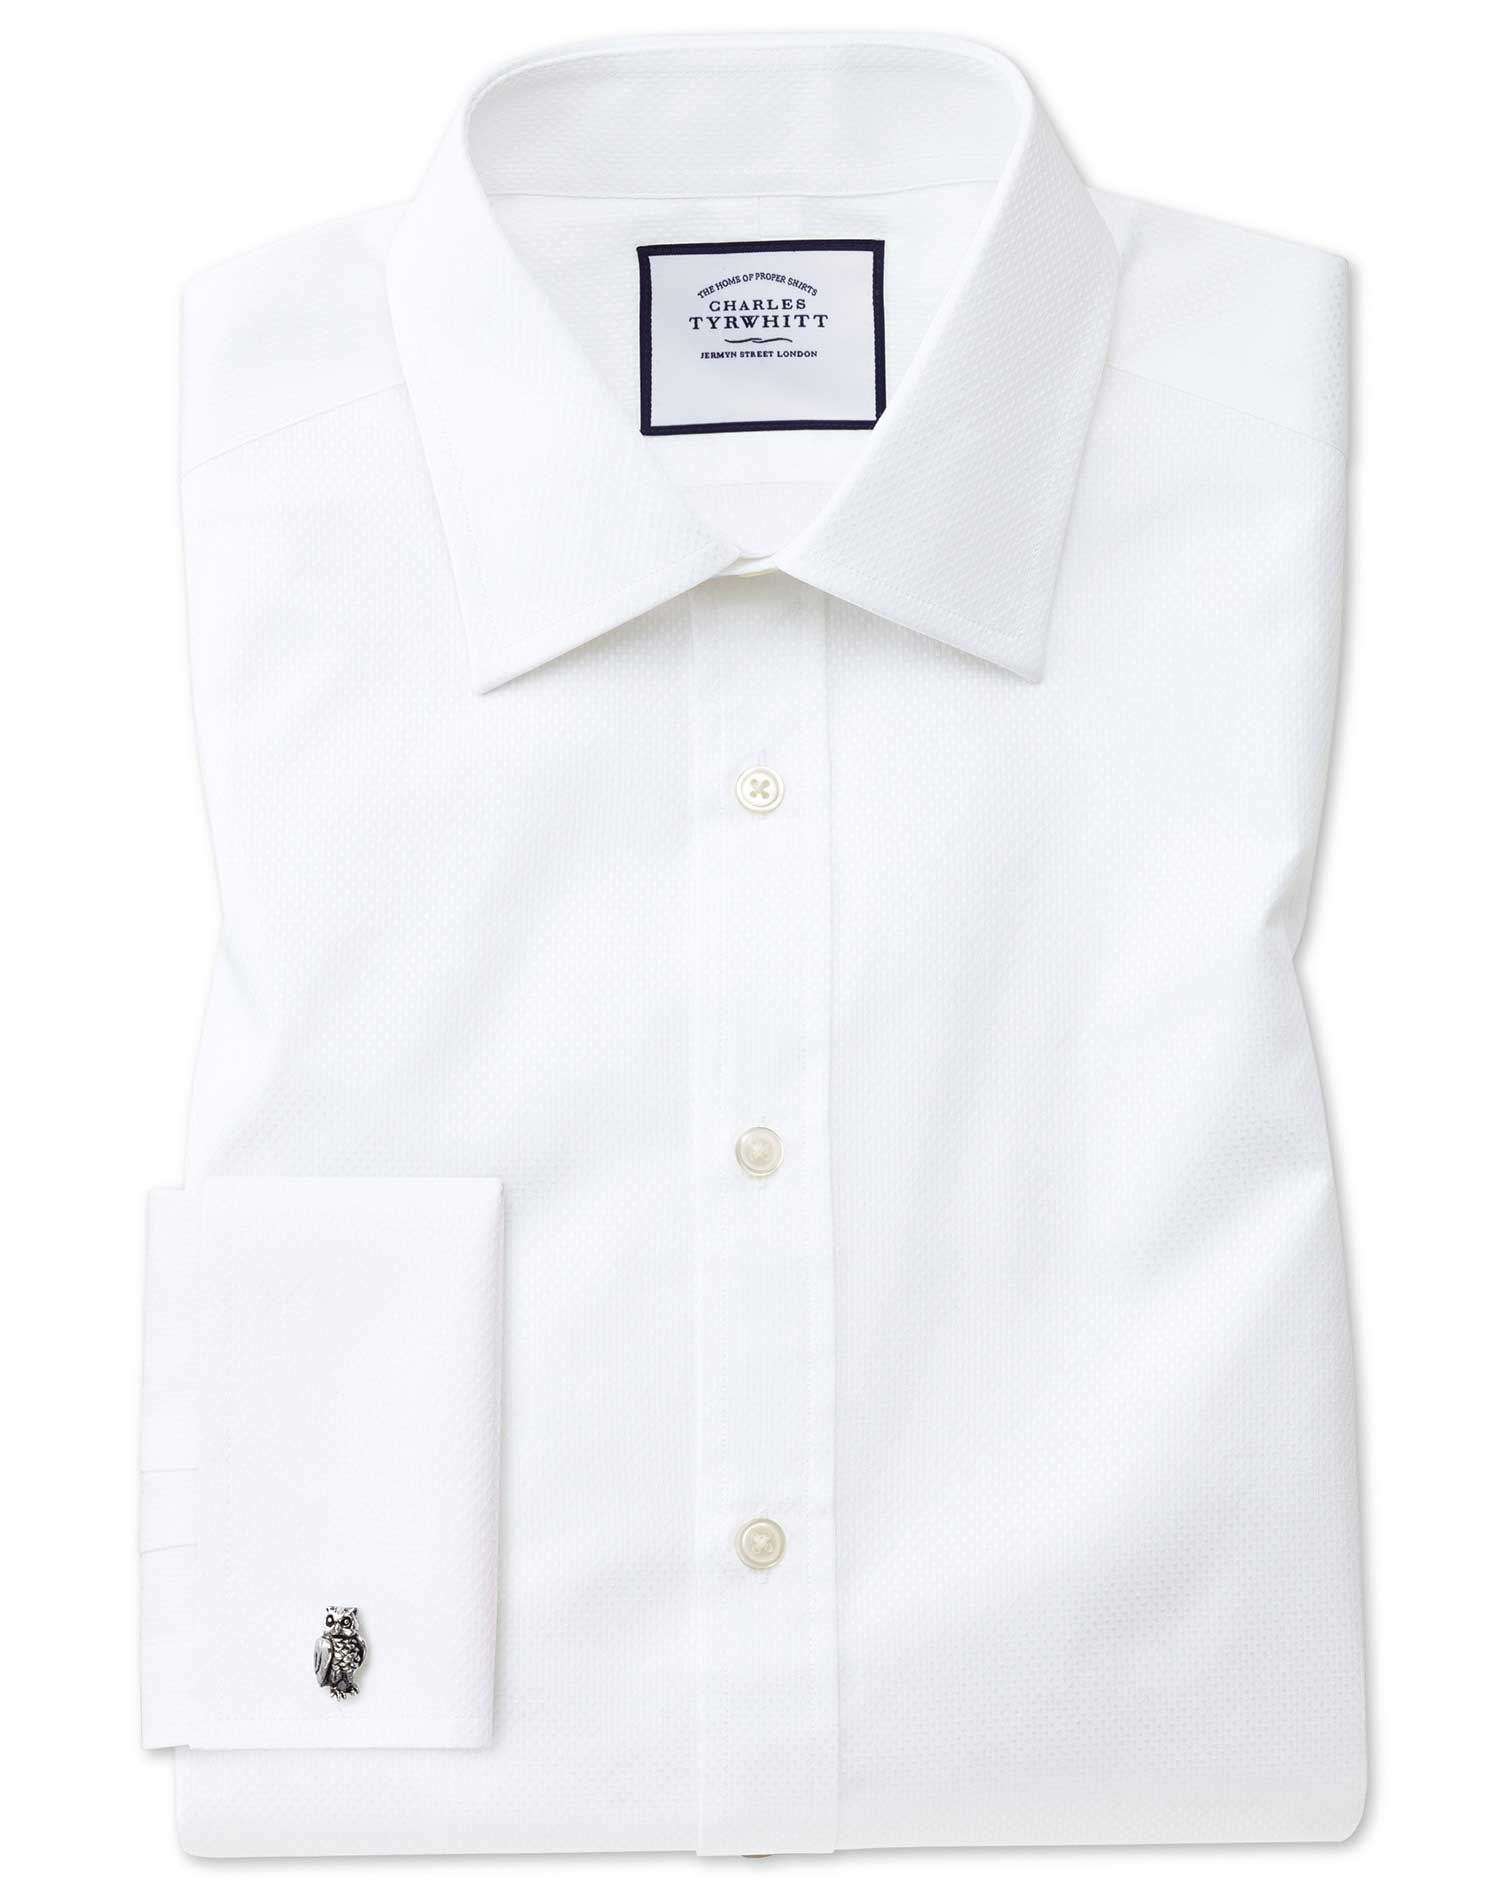 Classic Fit White Cube Weave Egyptian Cotton Formal Shirt Single Cuff Size 15.5/37 by Charles Tyrwhi